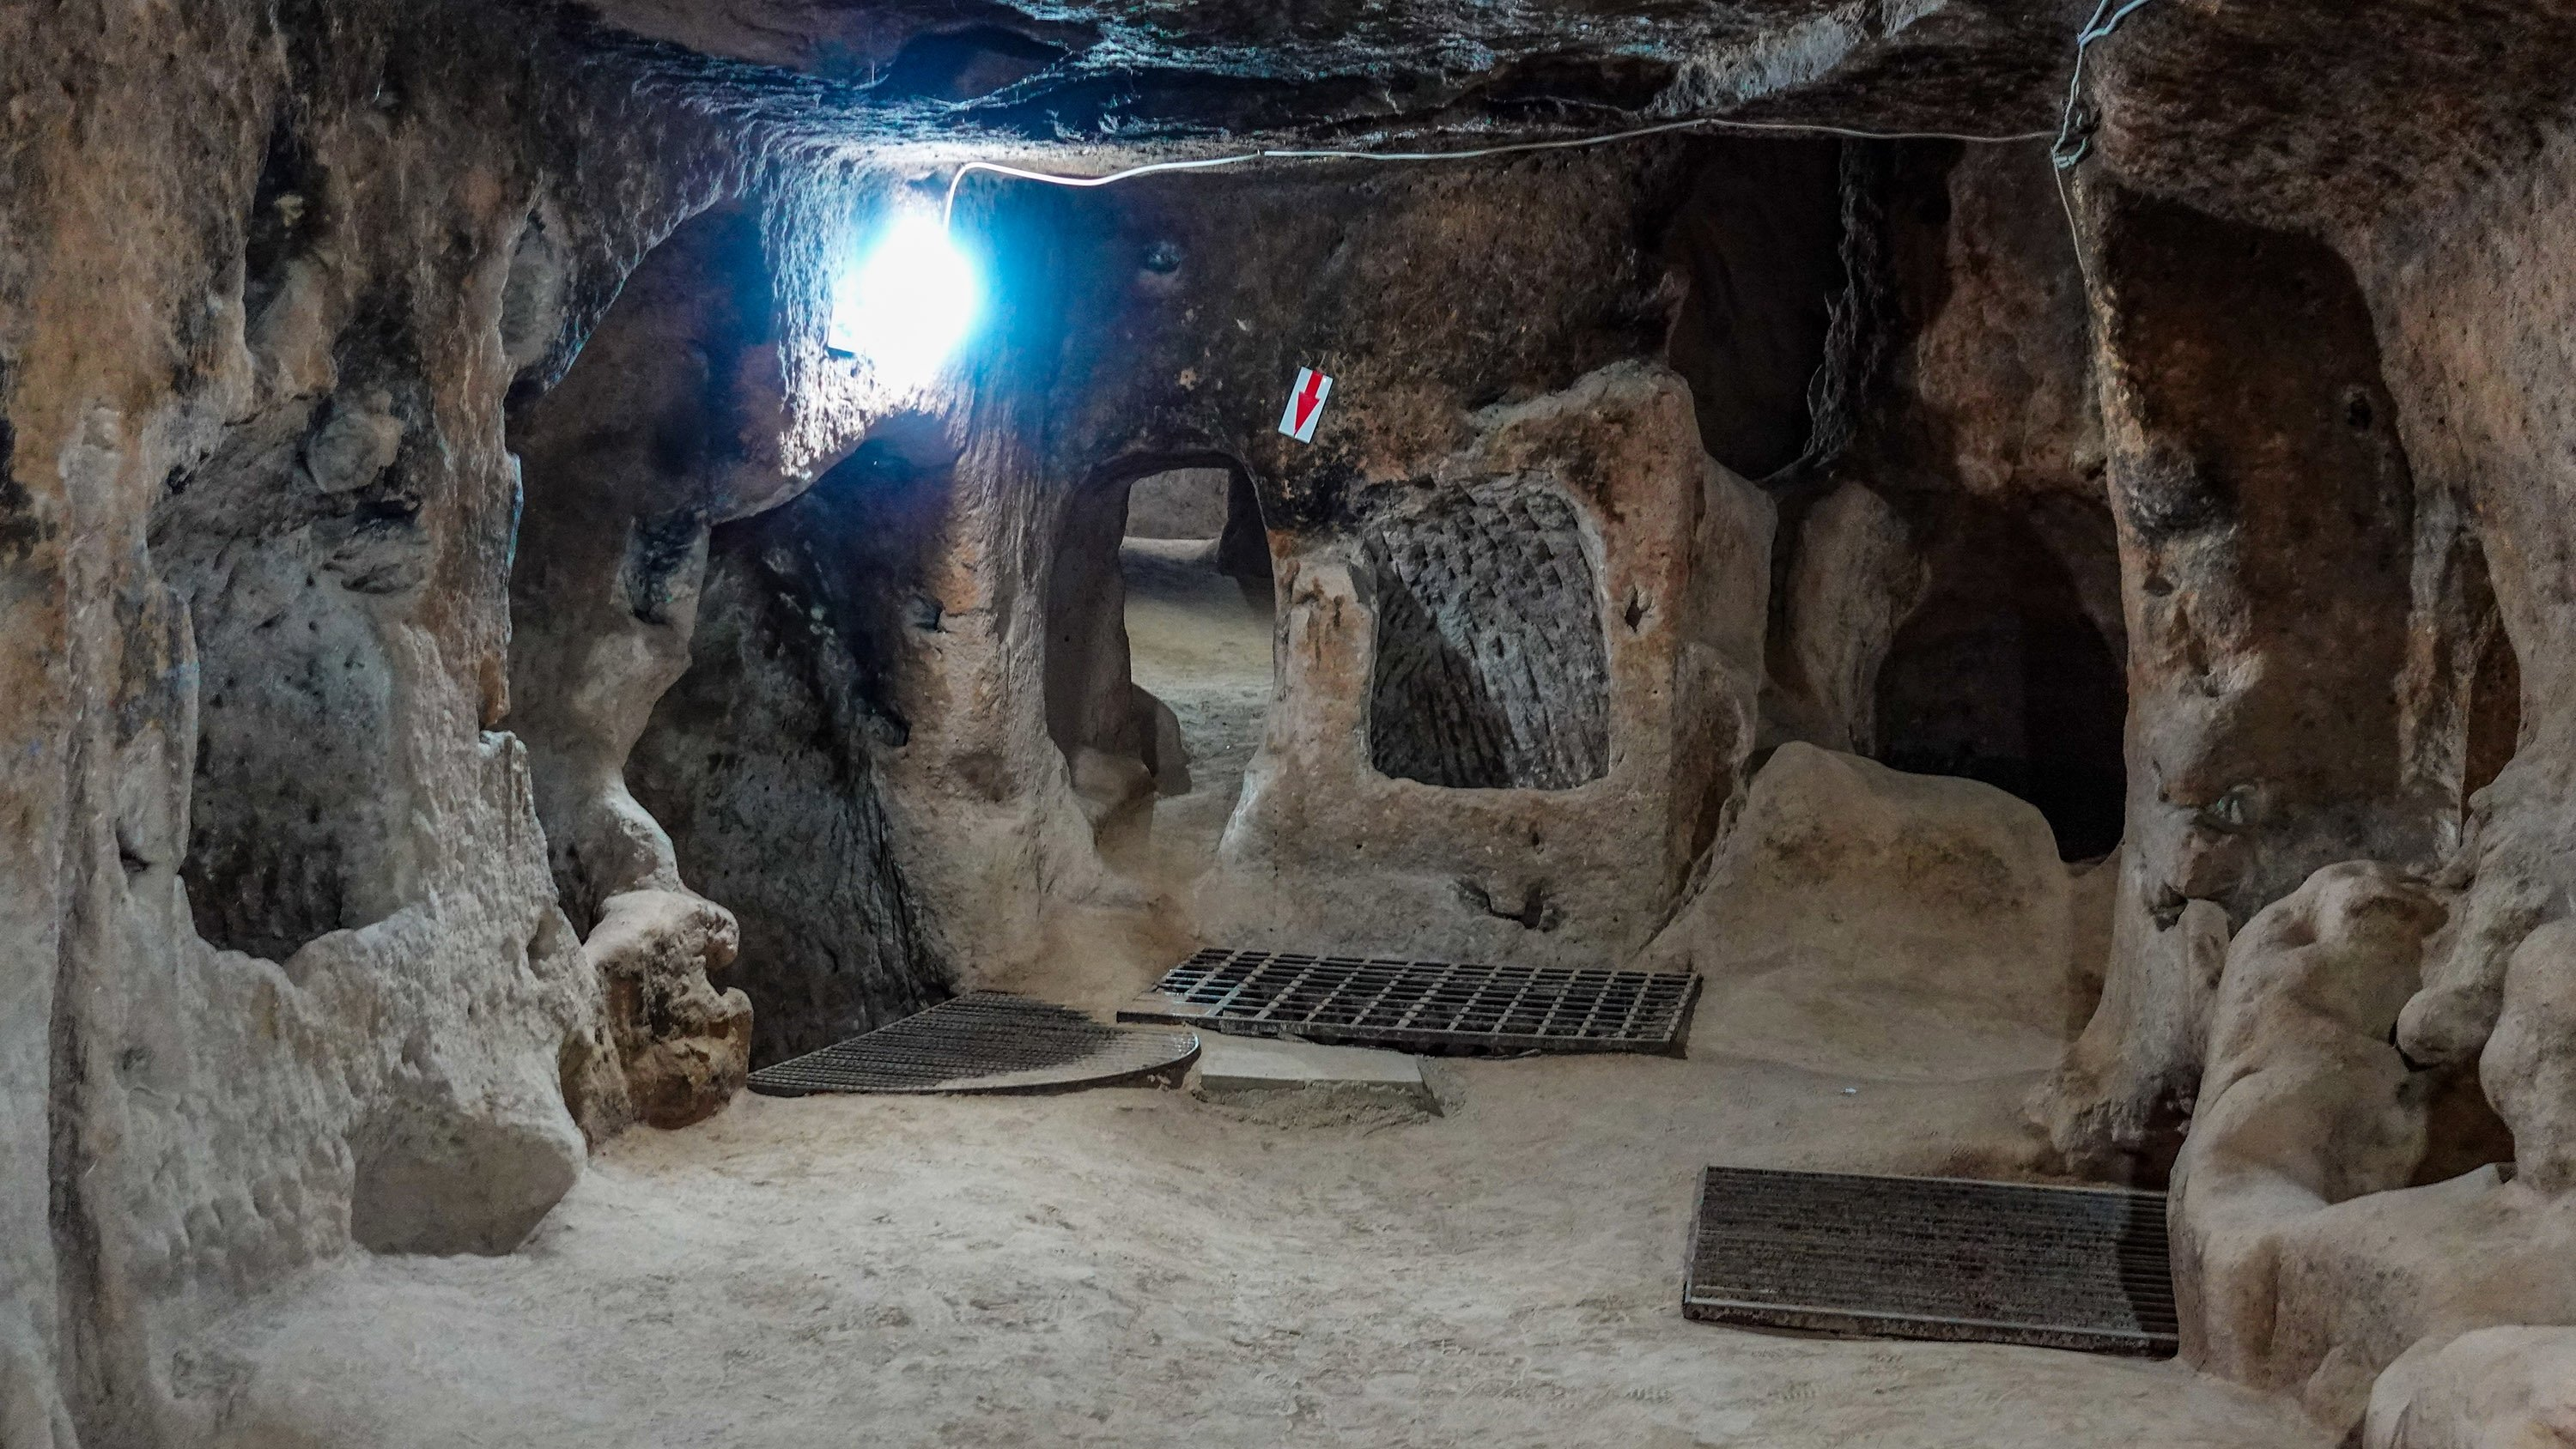 A chamber in Saratlı Kırkgöz Underground City. (Photo by Argun Konuk)